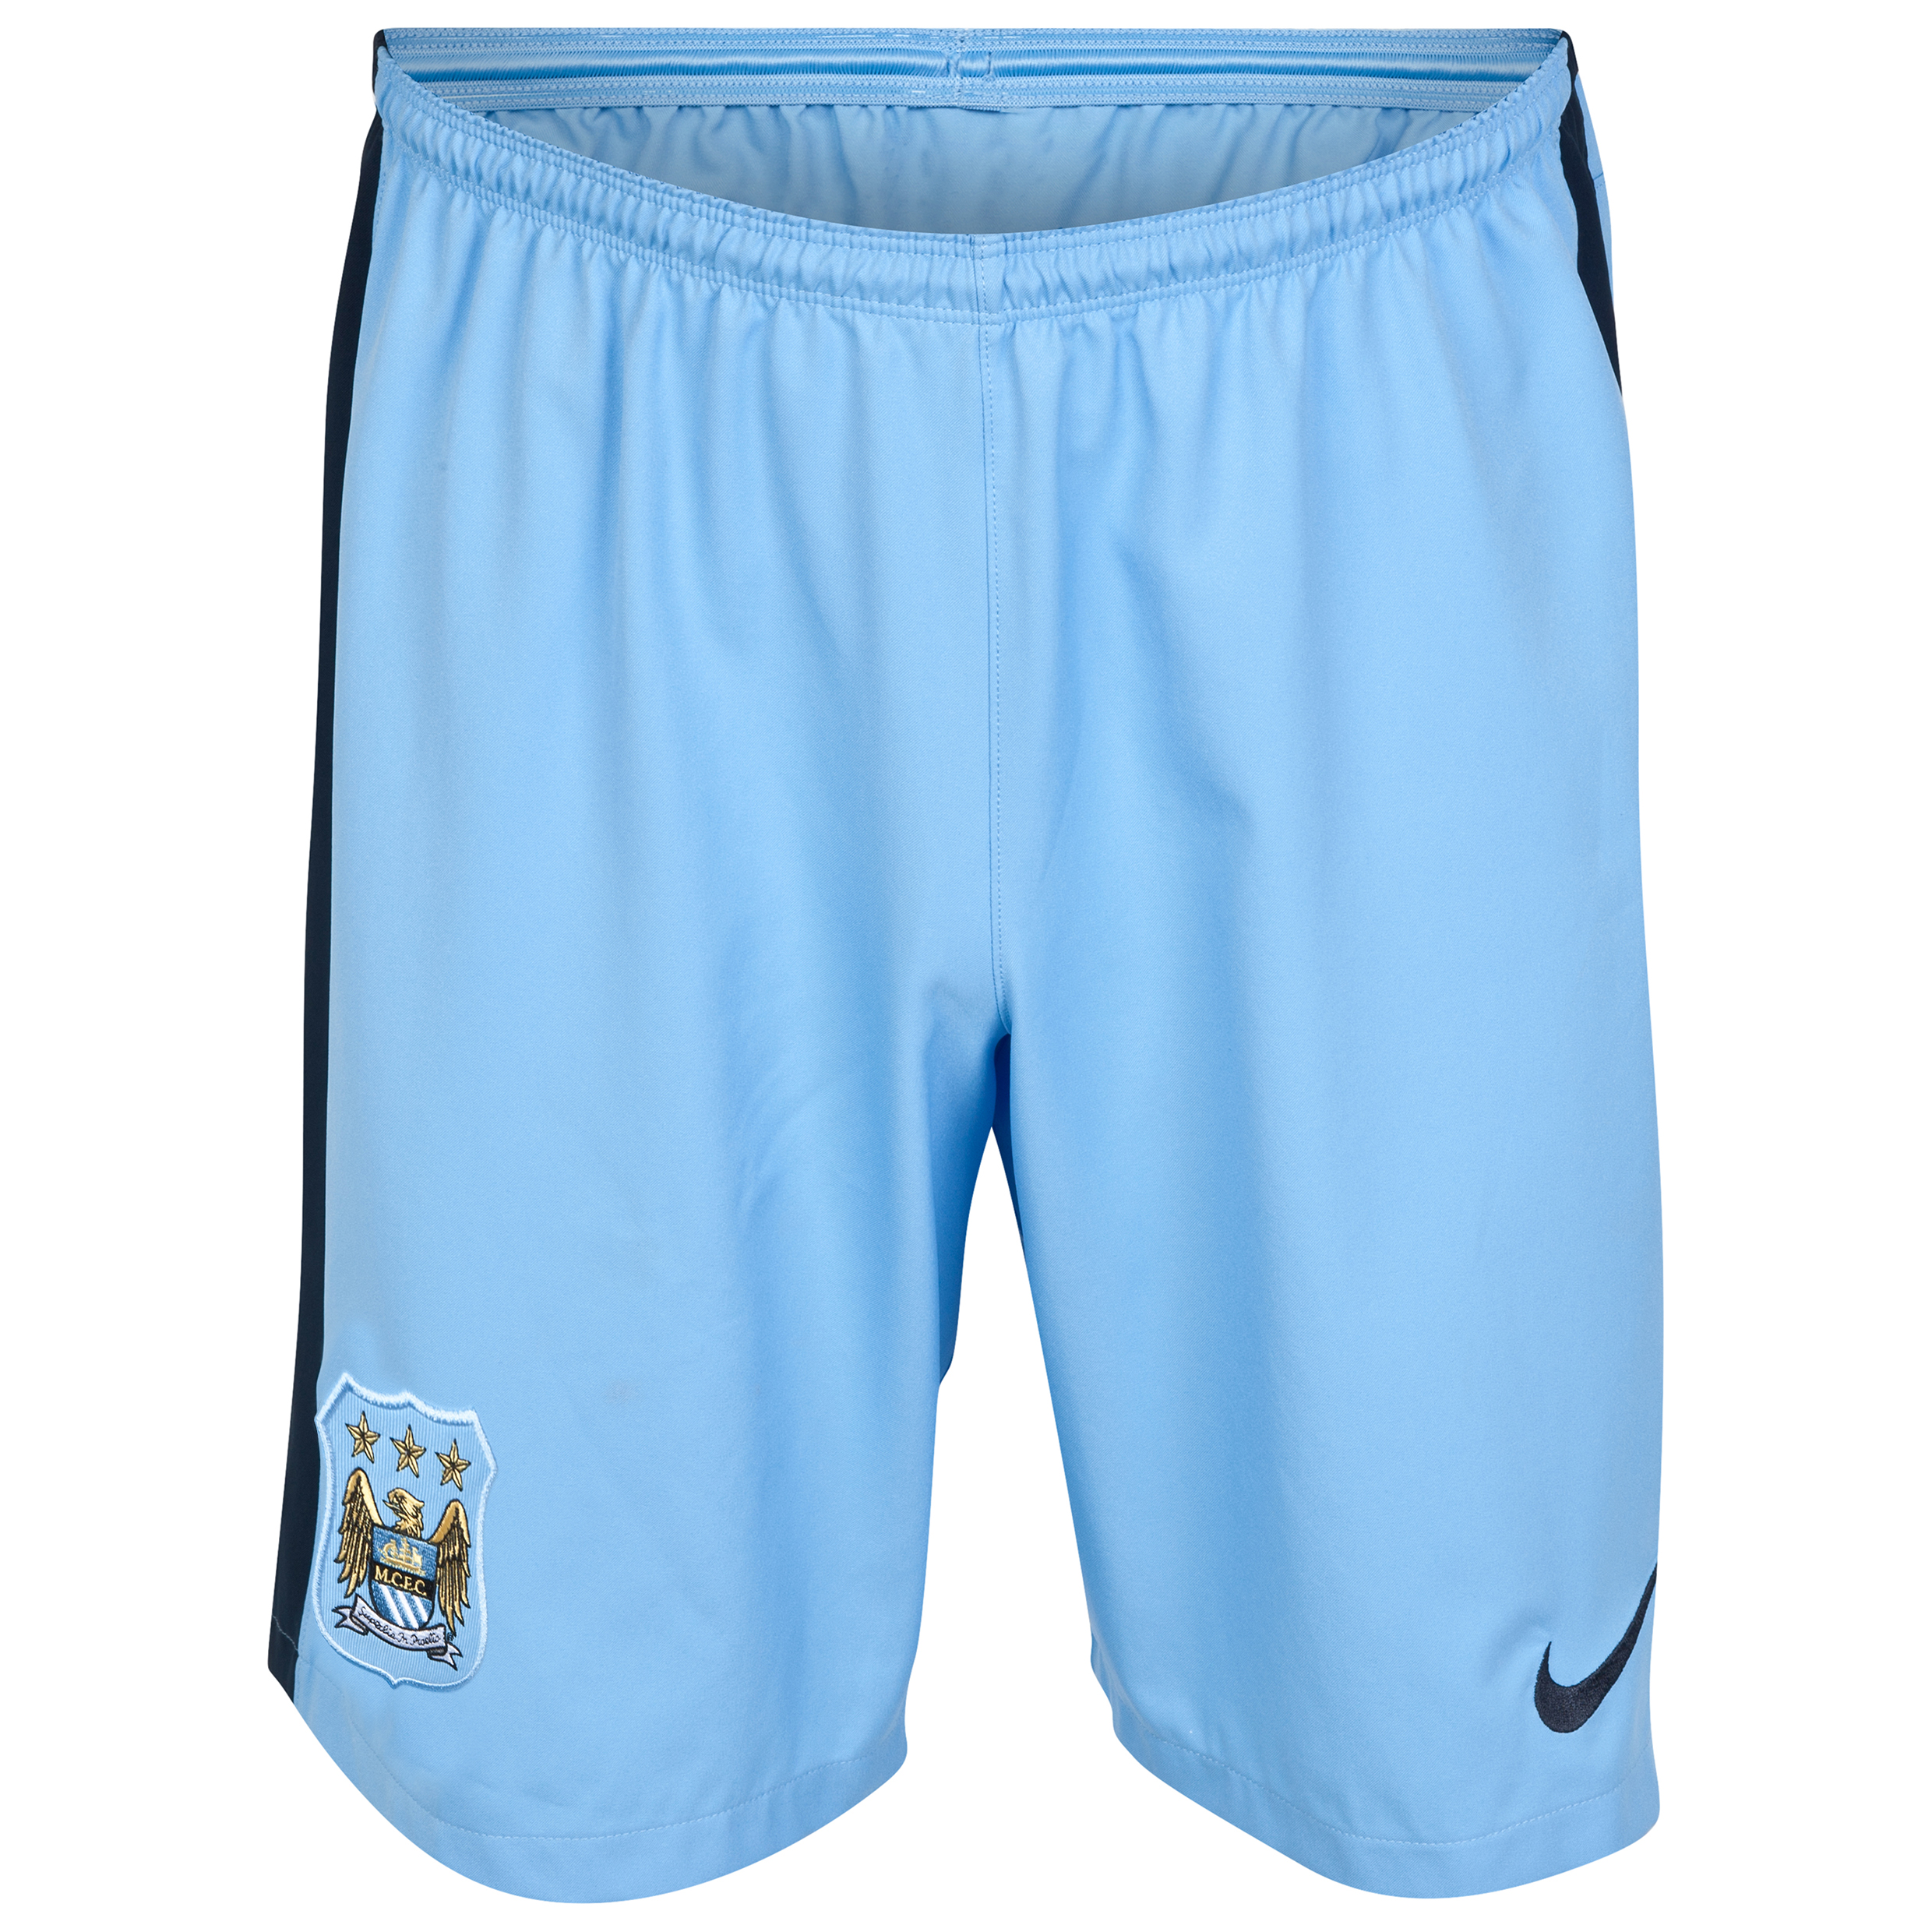 Manchester City Home Shorts 2014/15 Sky Blue